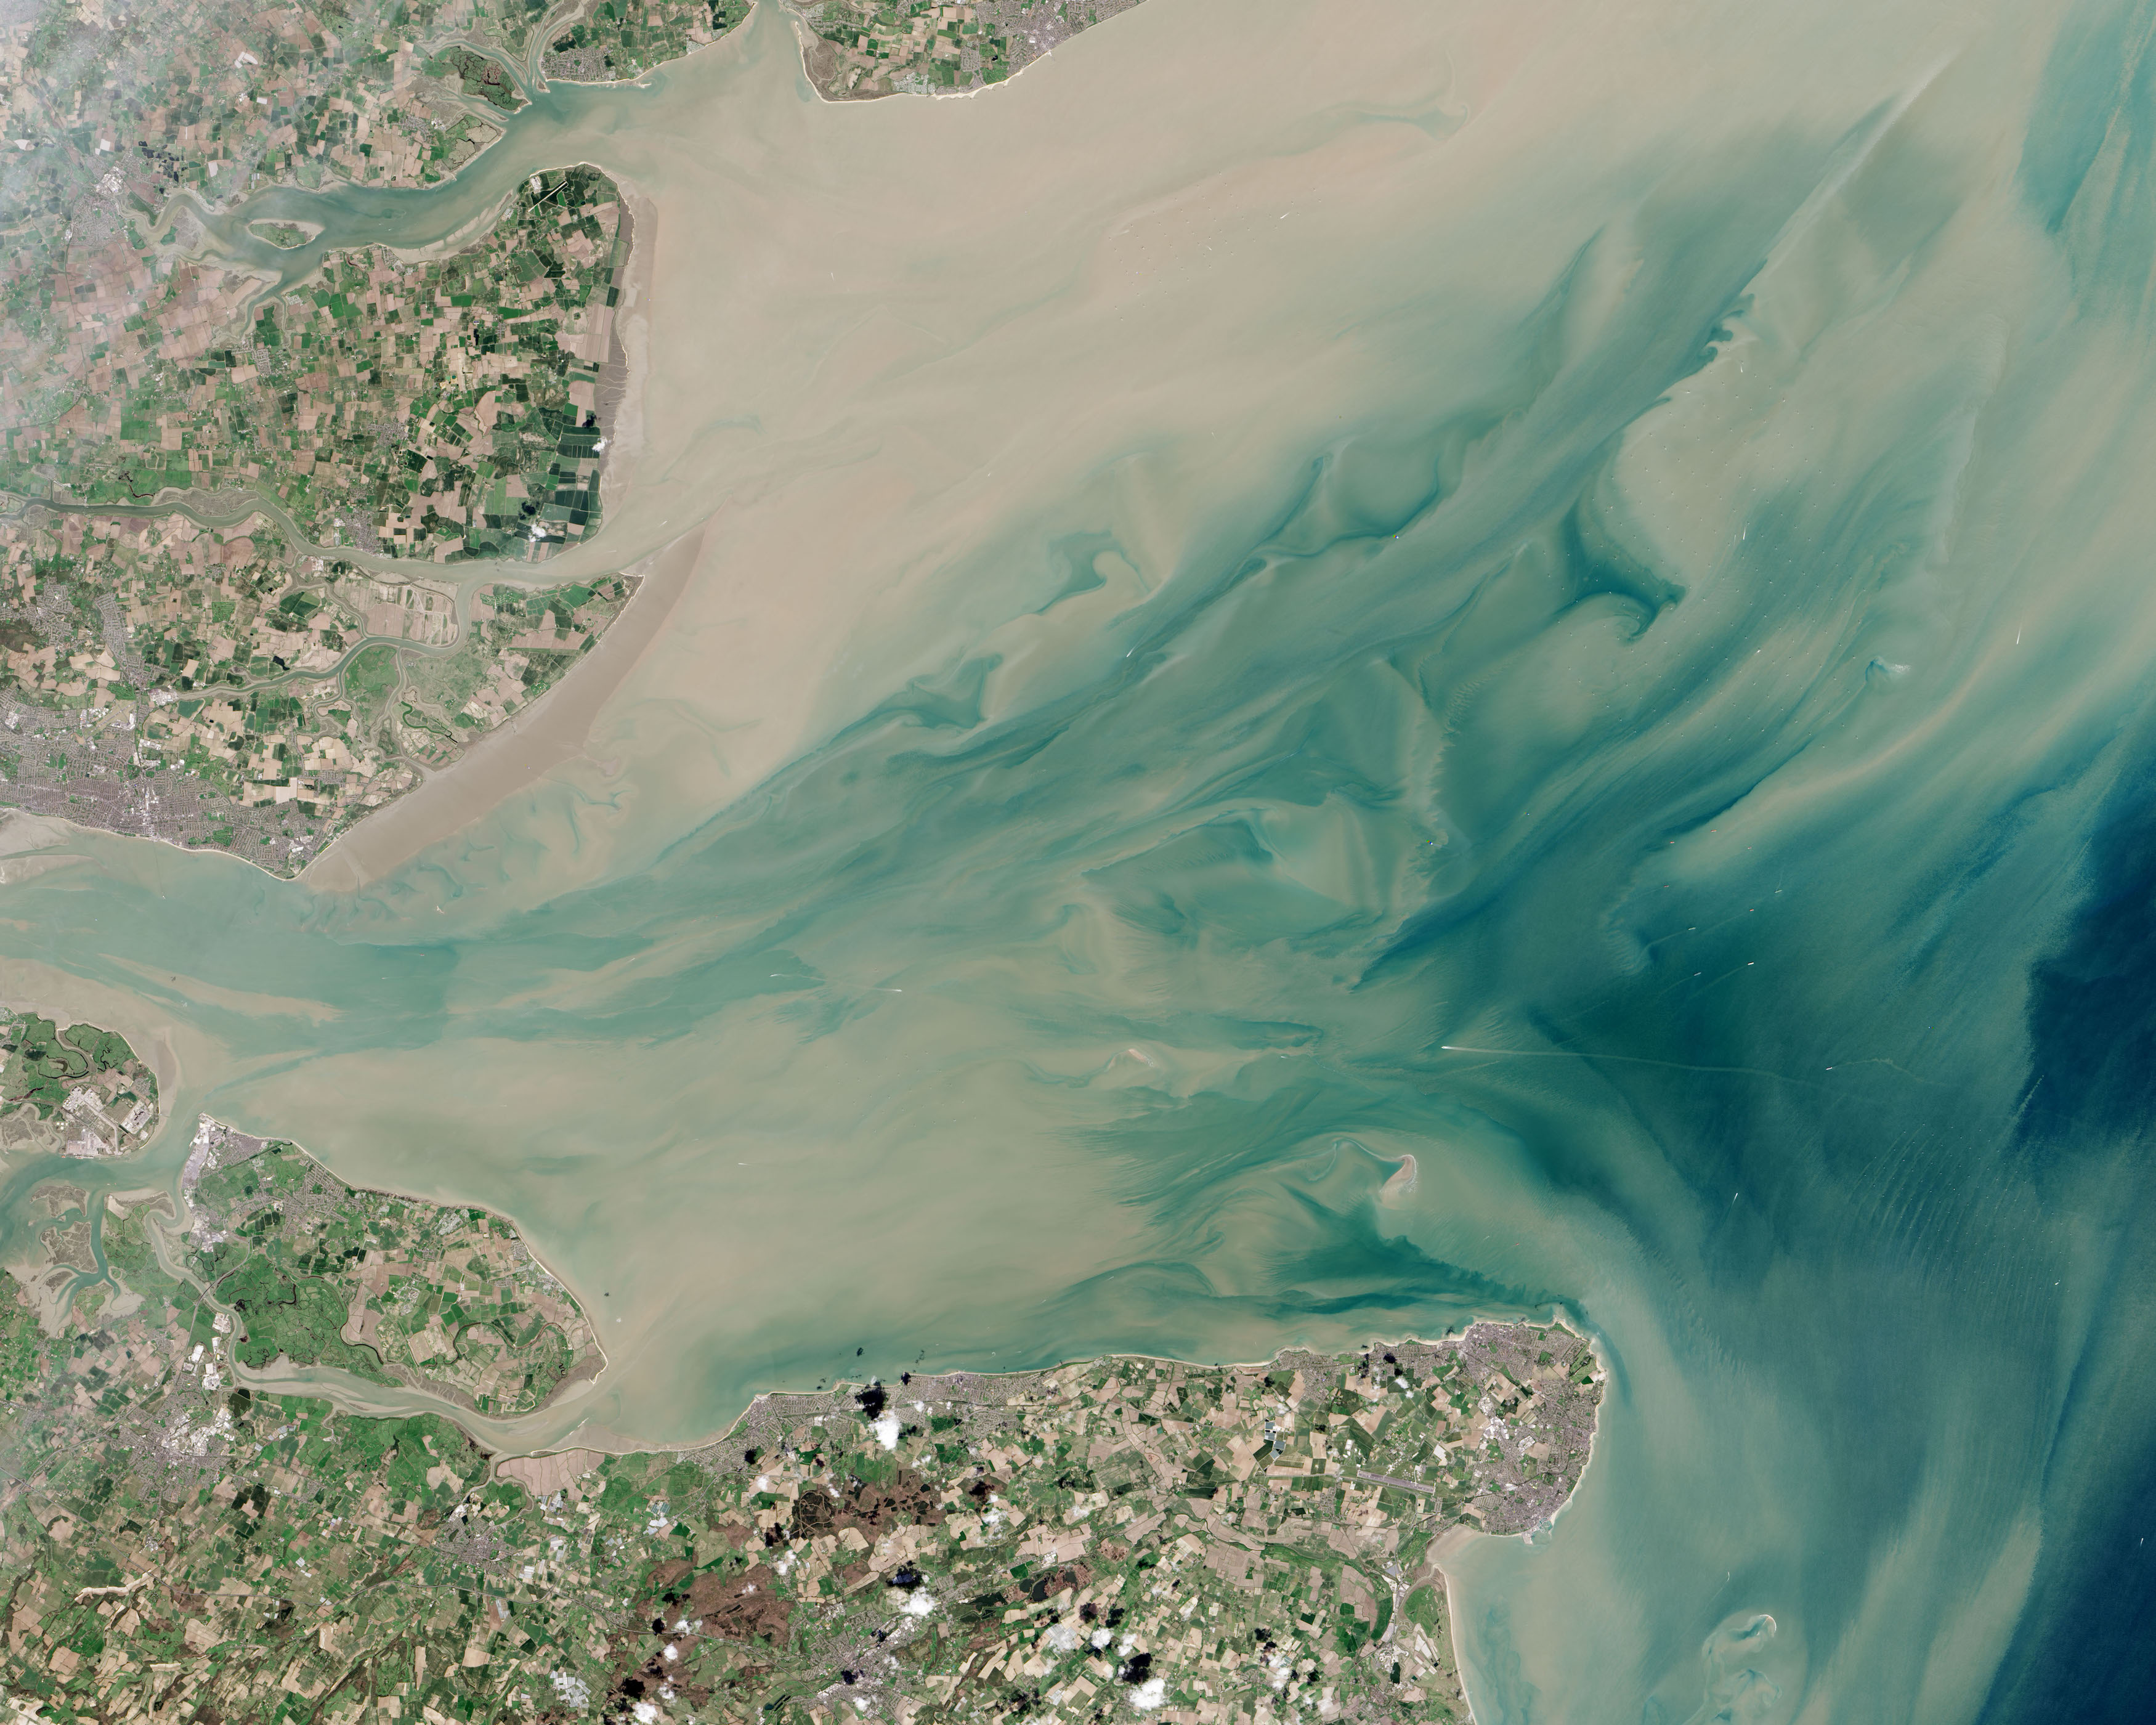 Today's Image of the Day comes thanks to the NASA Earth Observatory and features a look at the world's largest offshore wind farm: The London Array.